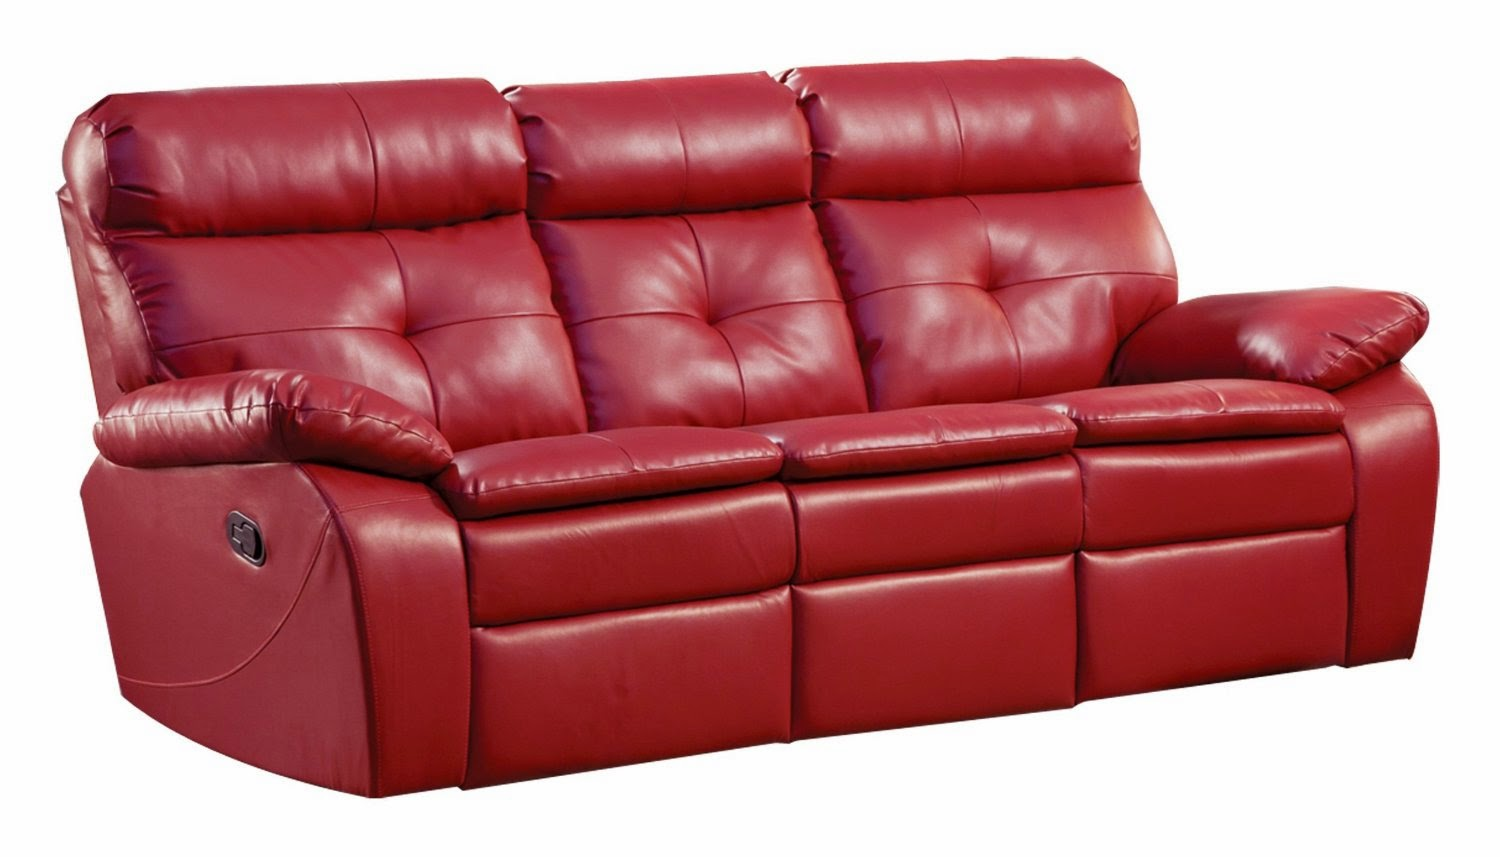 The best reclining sofa reviews red leather reclining sofa and loveseat Leather reclining sofa loveseat